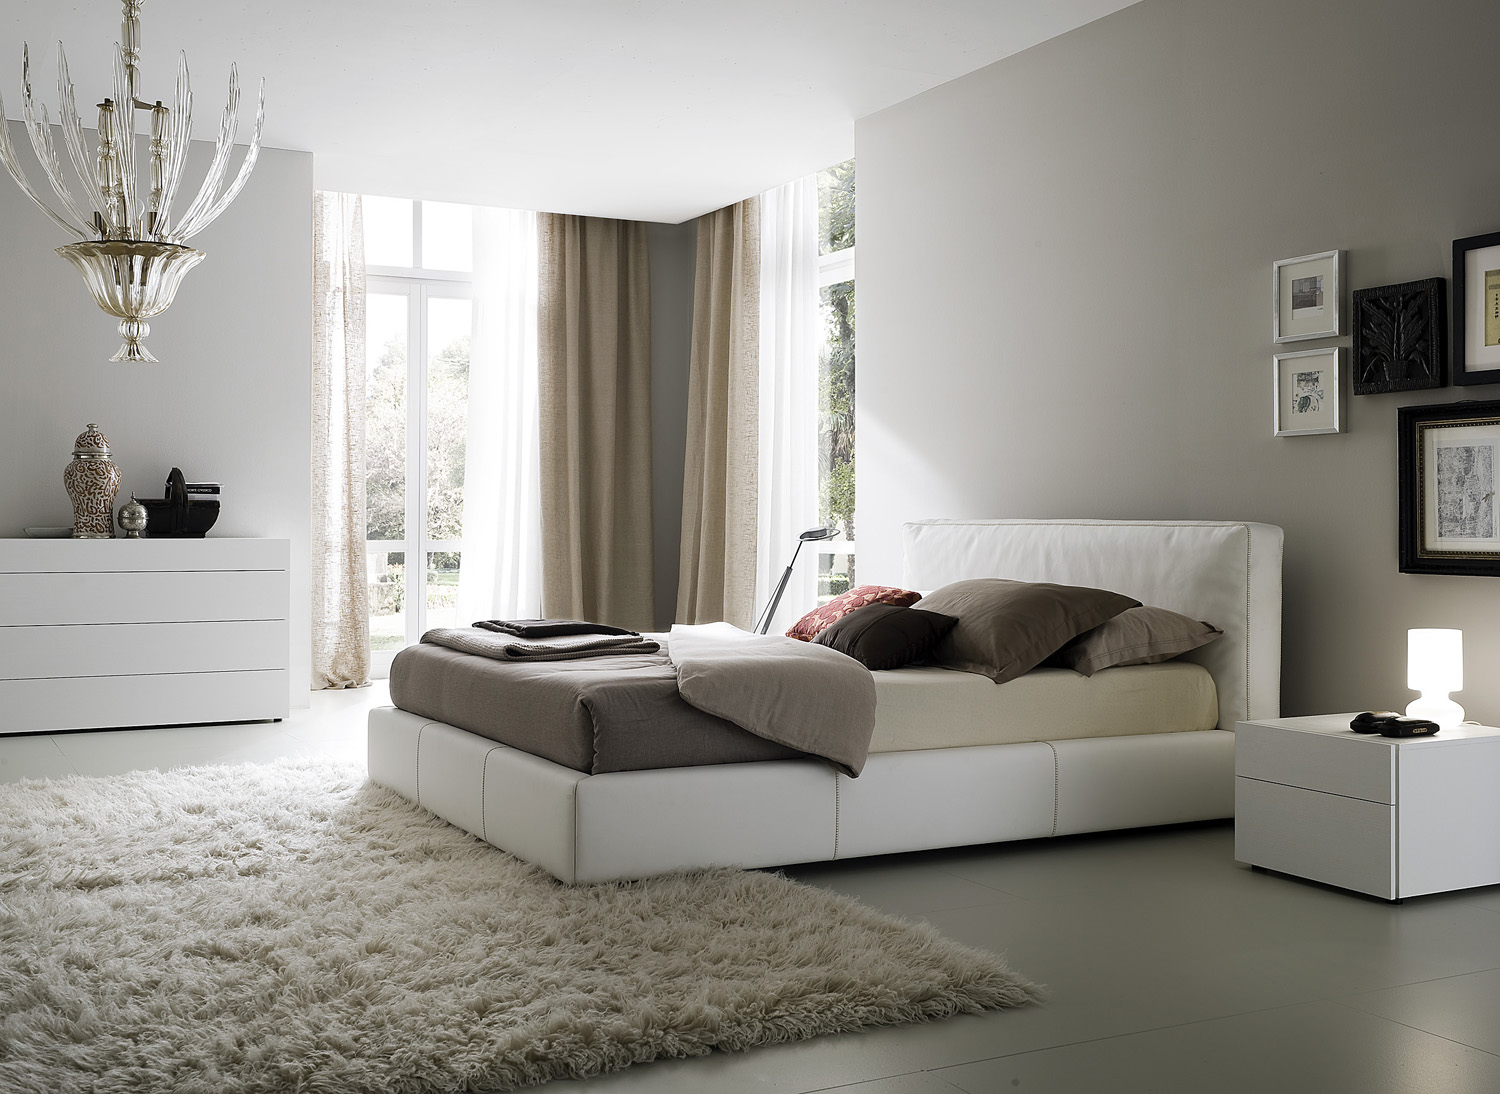 bedroom decorating ideas from evinco On bedroom ideas decor